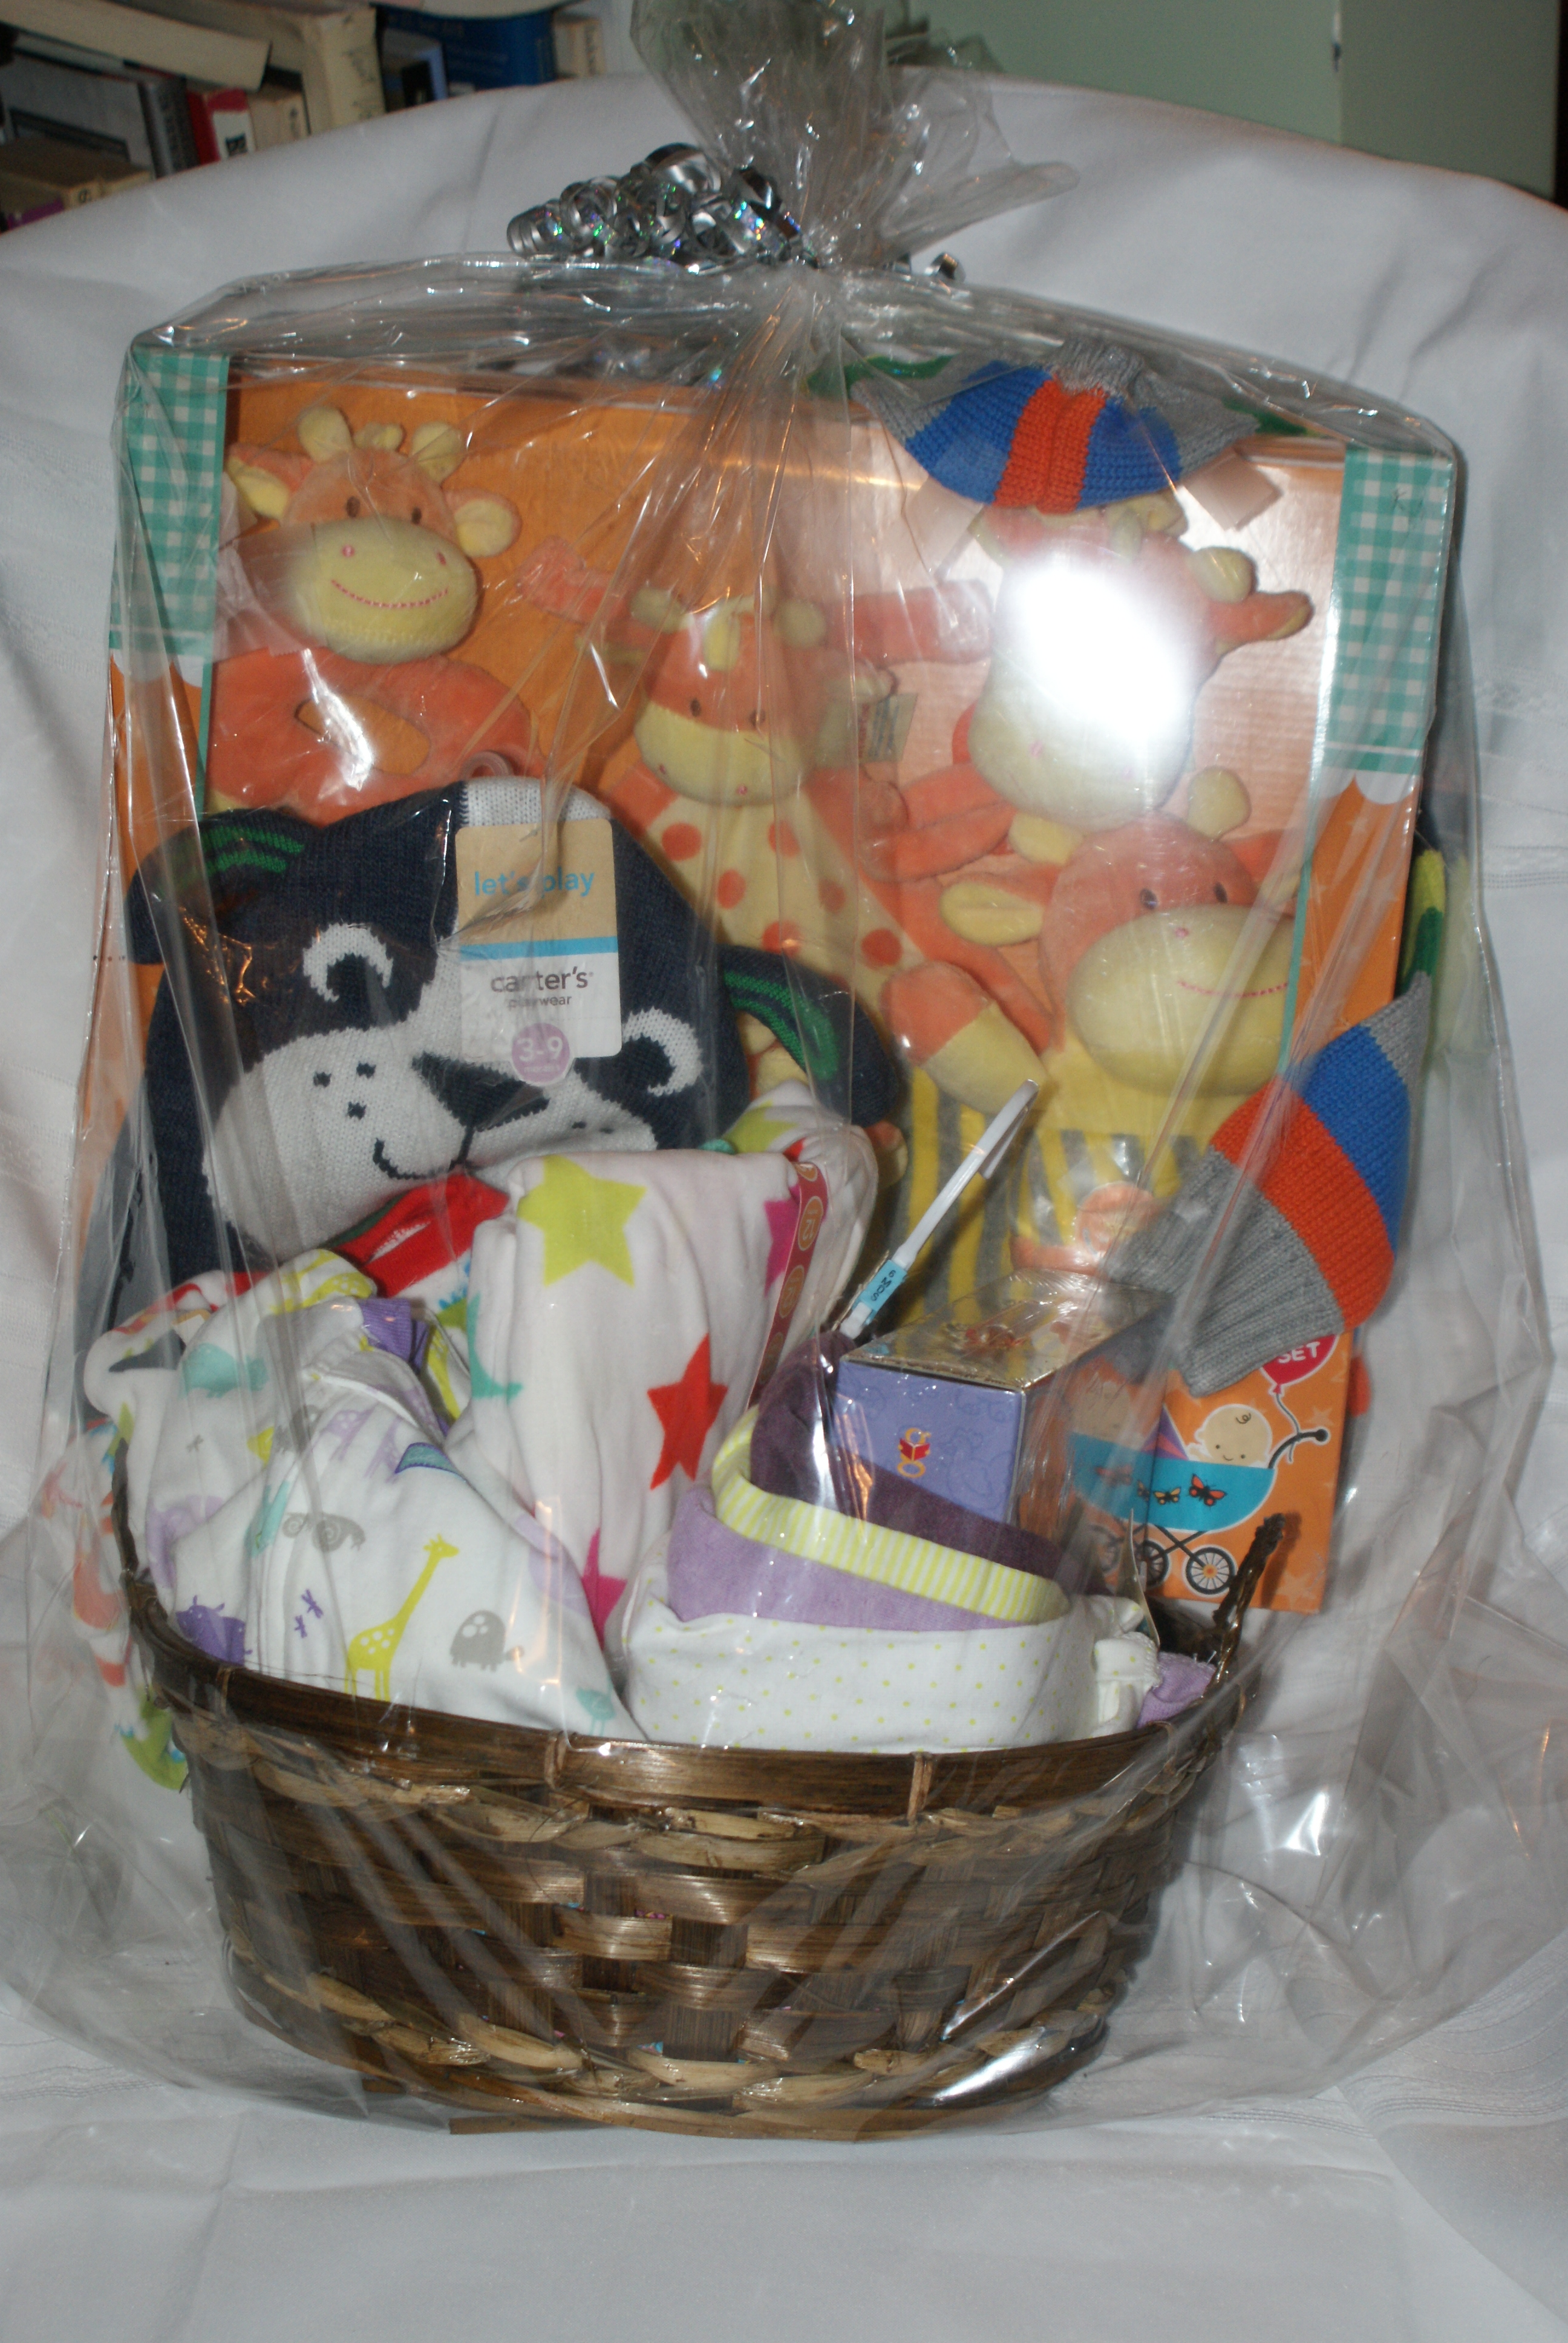 Baby Gift For Coworker : New baby gift basket